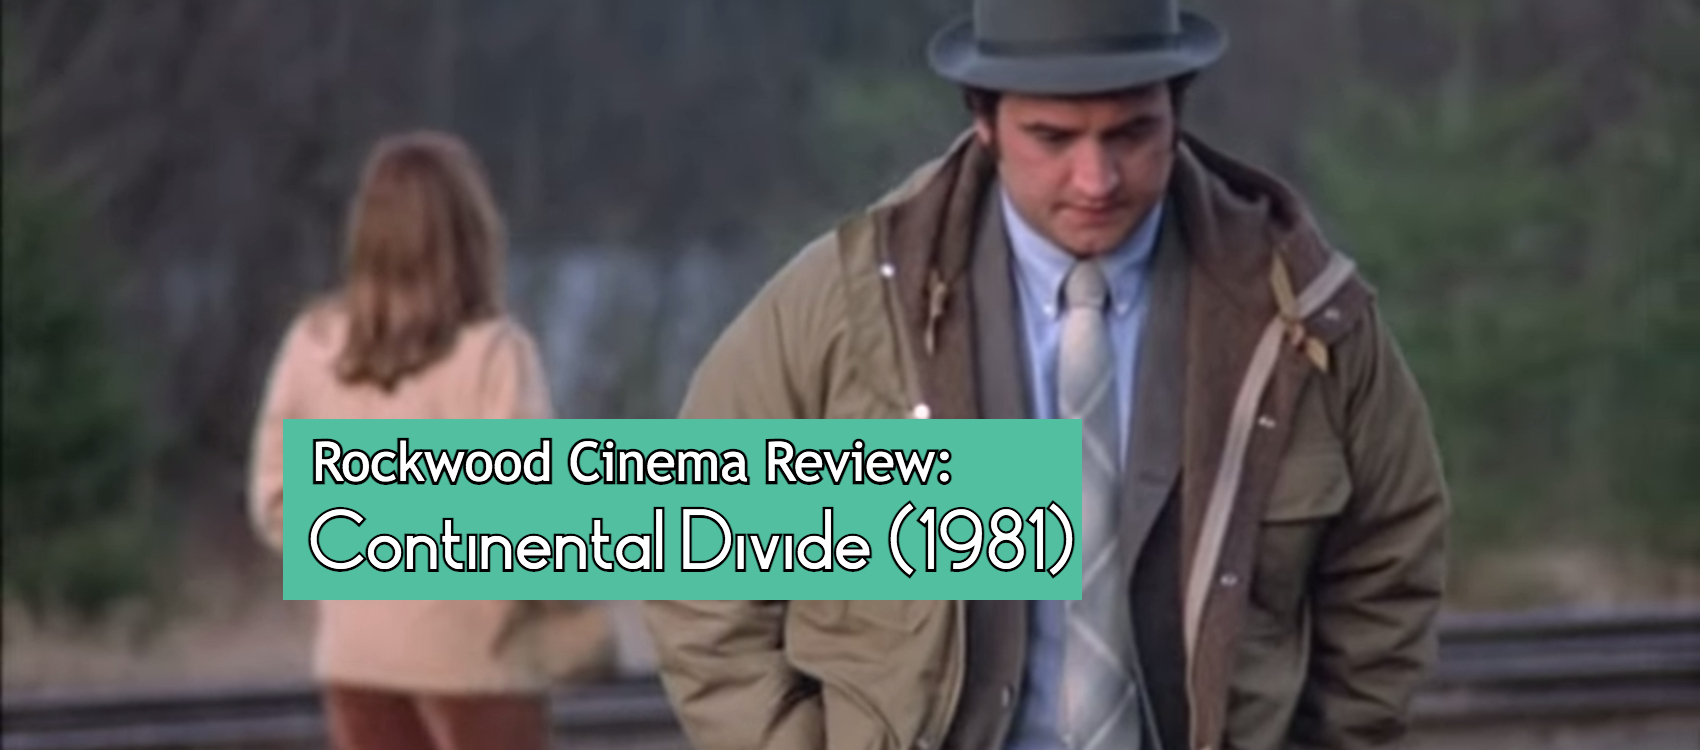 Banner for the review of Continental Divide, Jim Belushi stands near train tracks, there is a woman in background with her back turned to him.